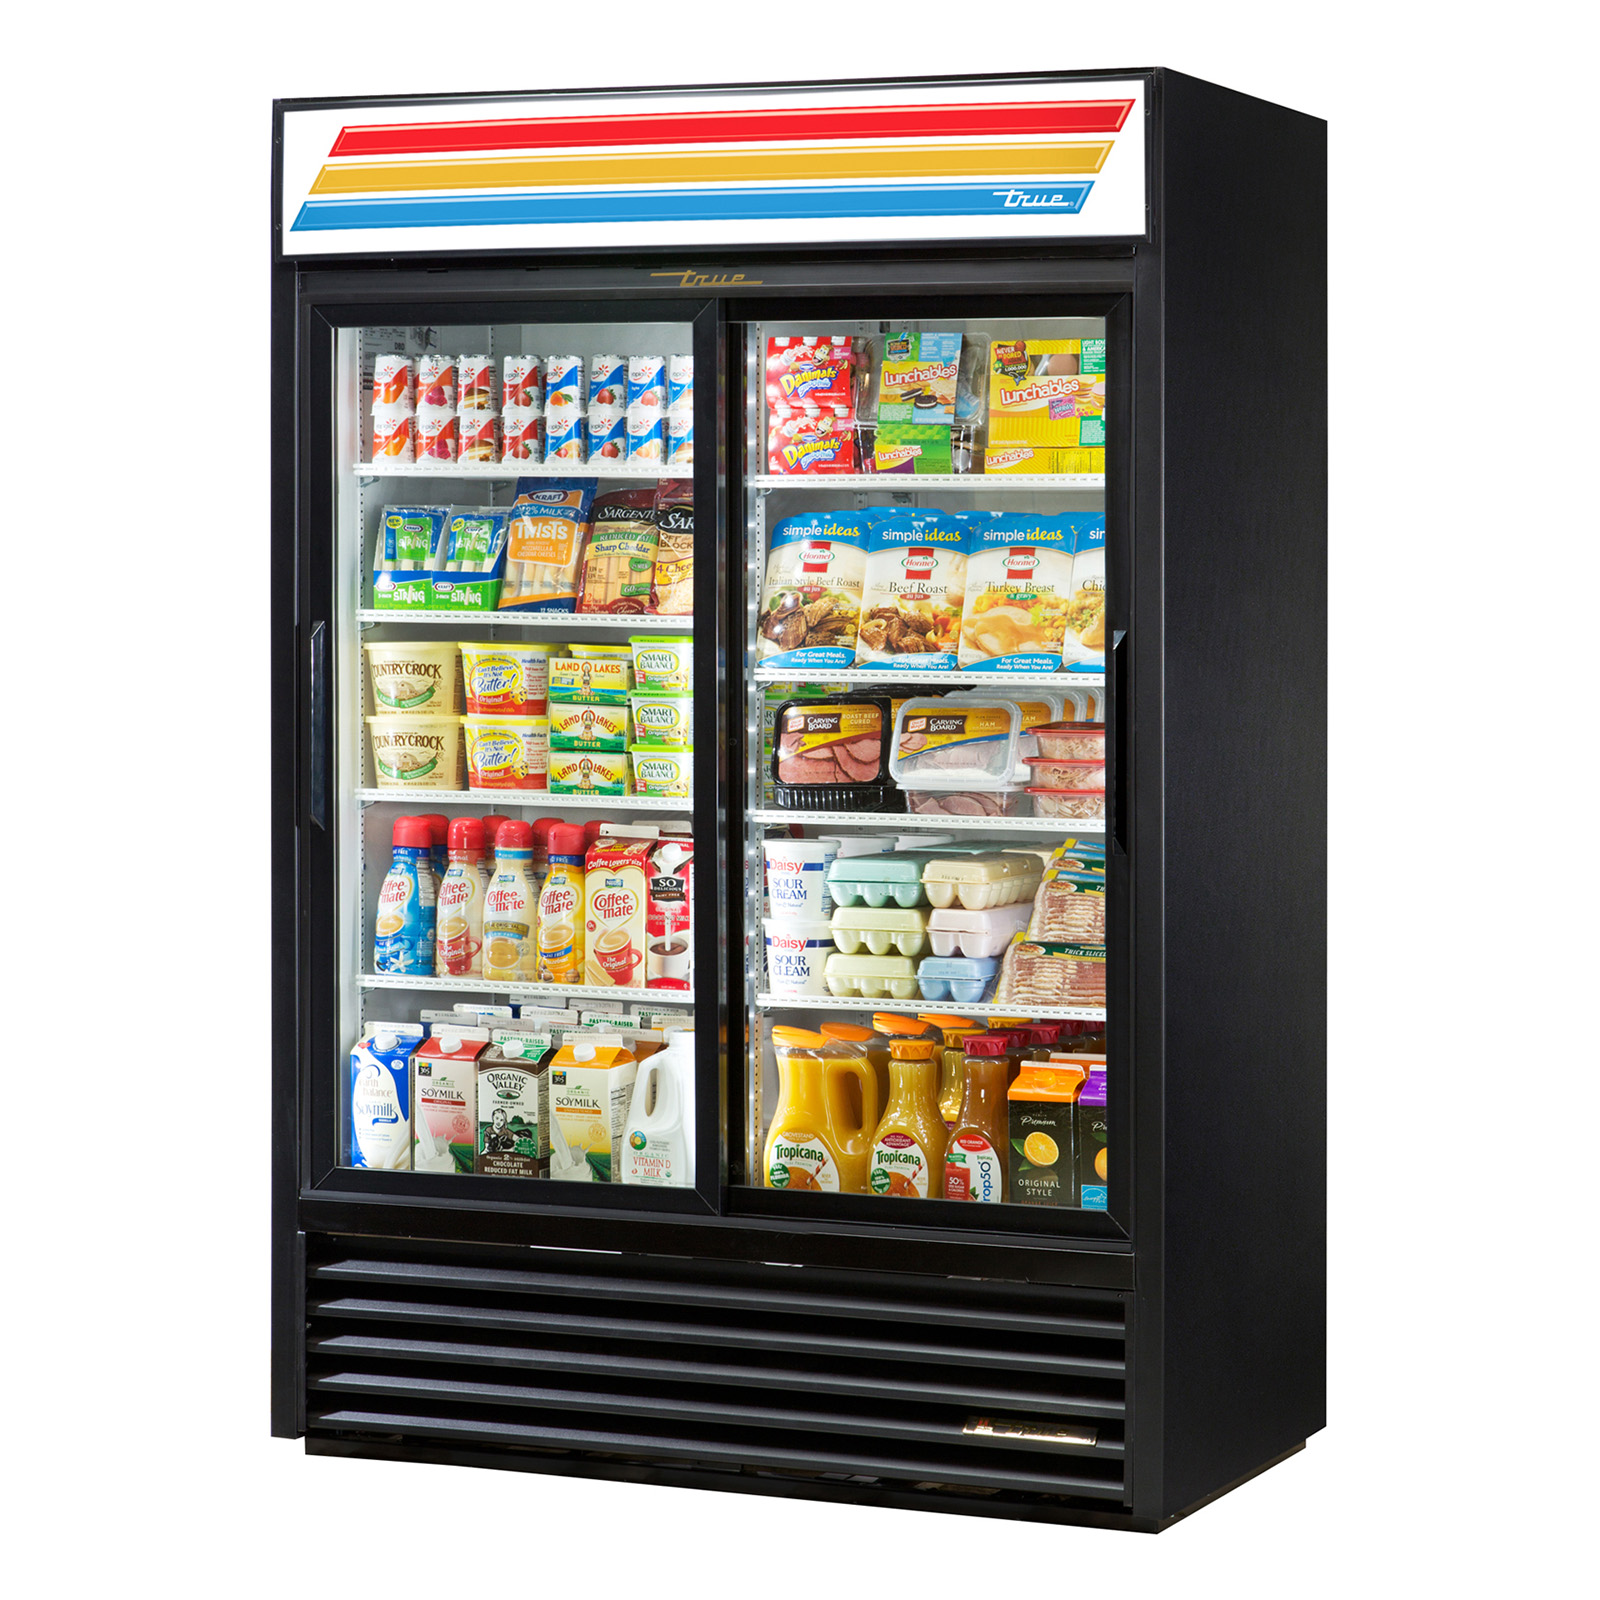 GDM-47-LD True - Refrigerated Merchandiser two-section